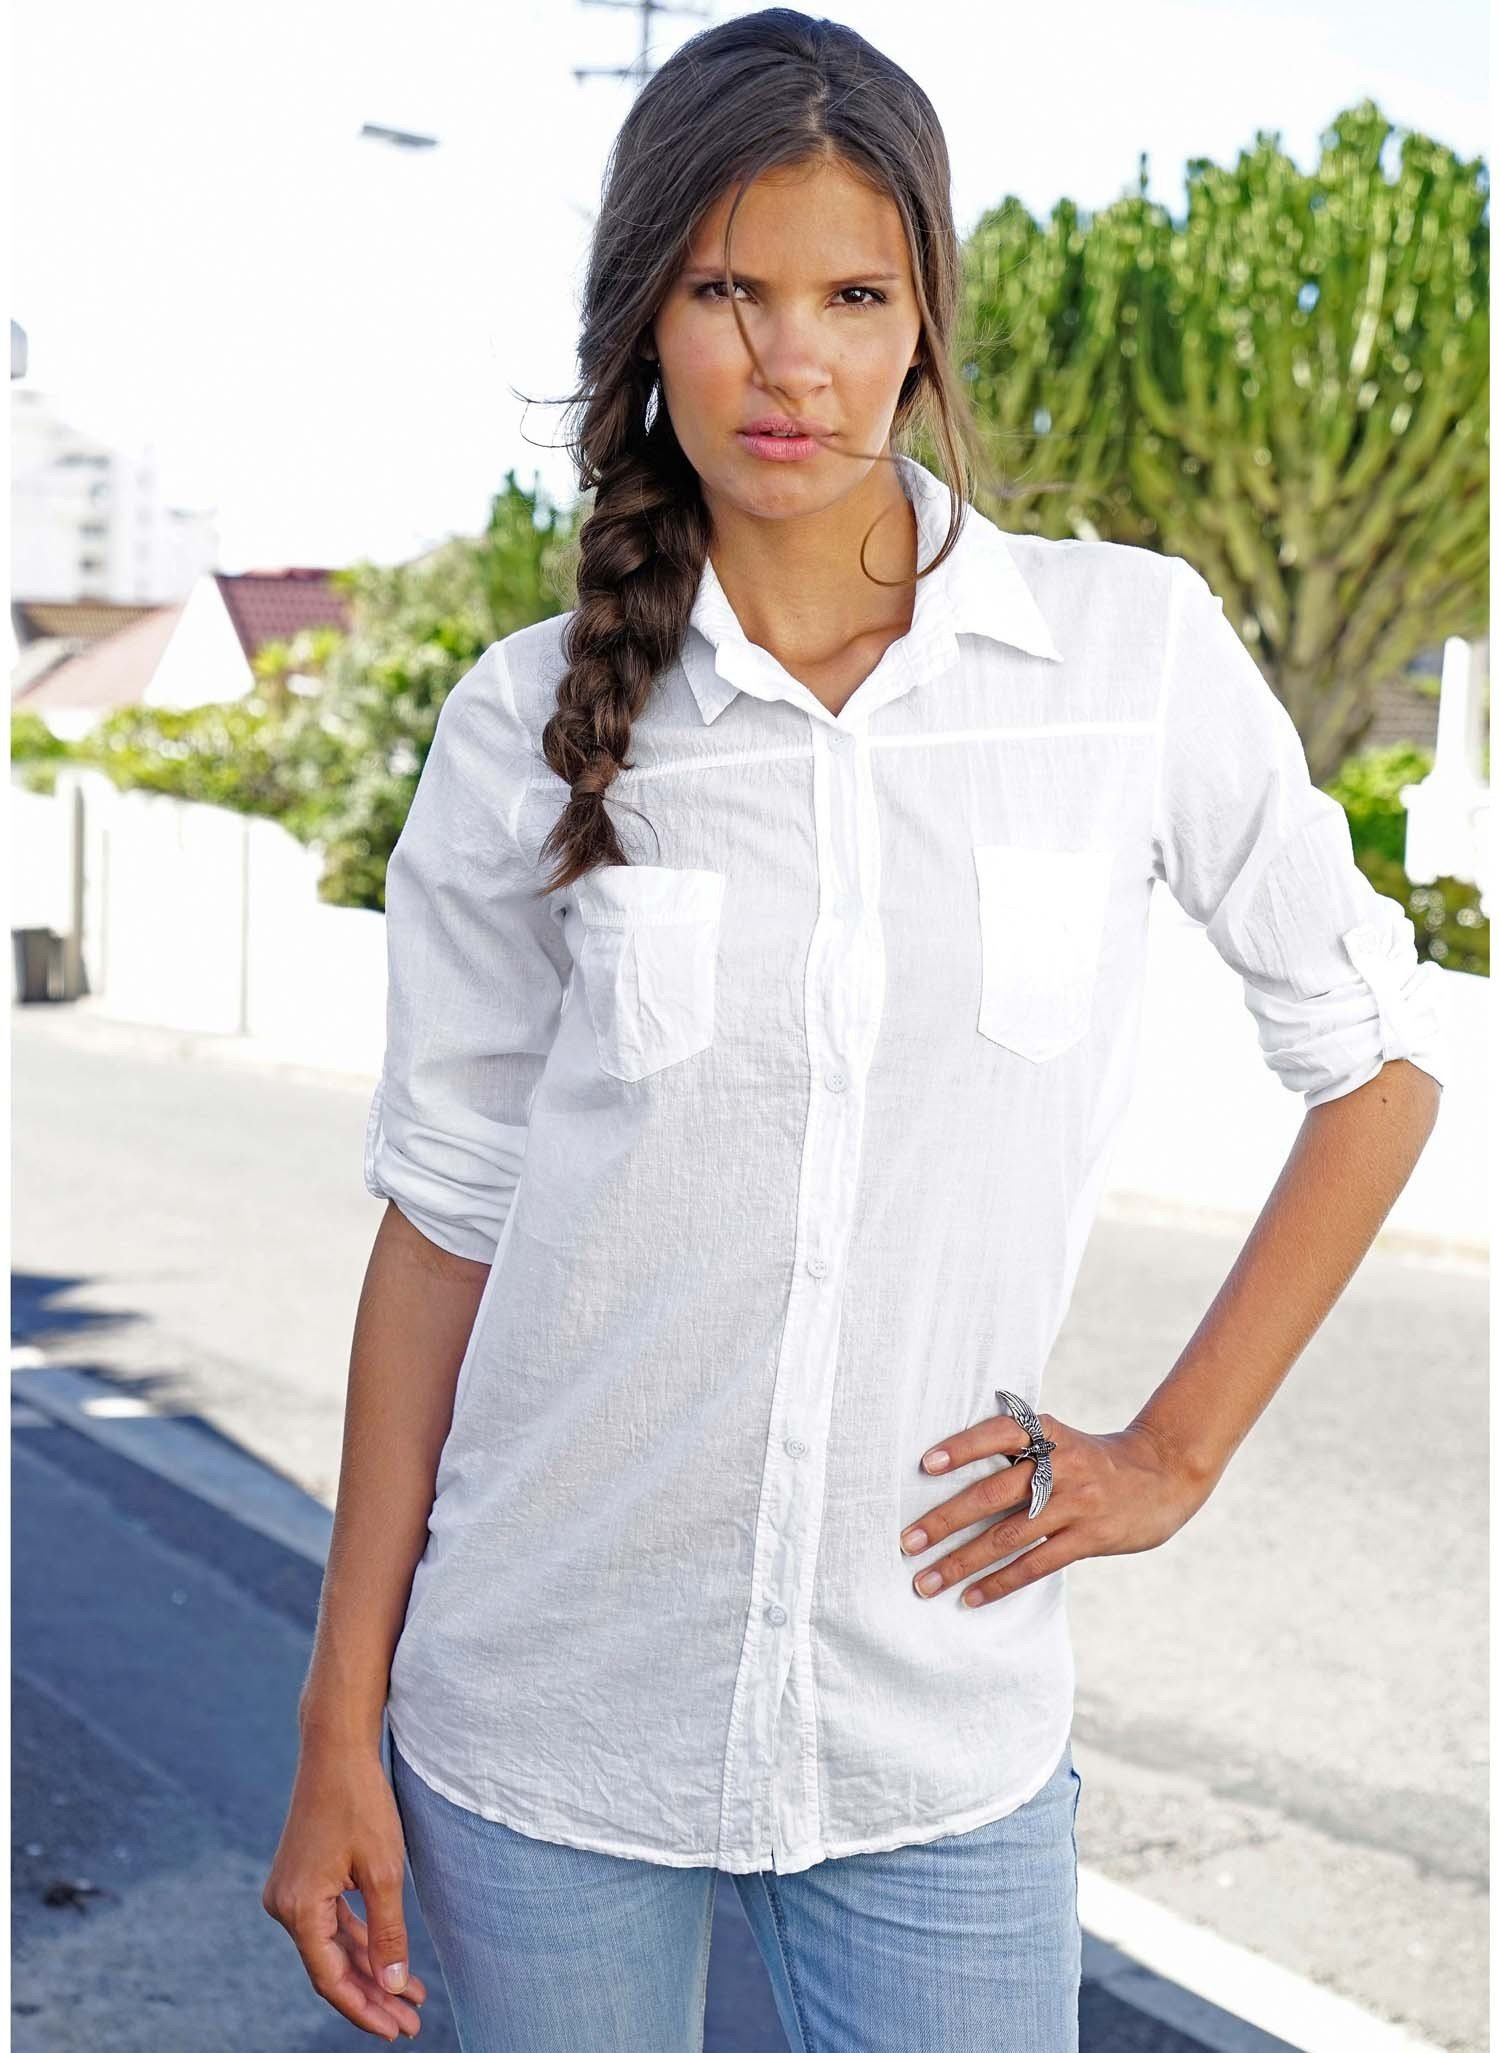 D-Long-Bluse,Lasche weiss L 001 - 3 - Ronja.ch